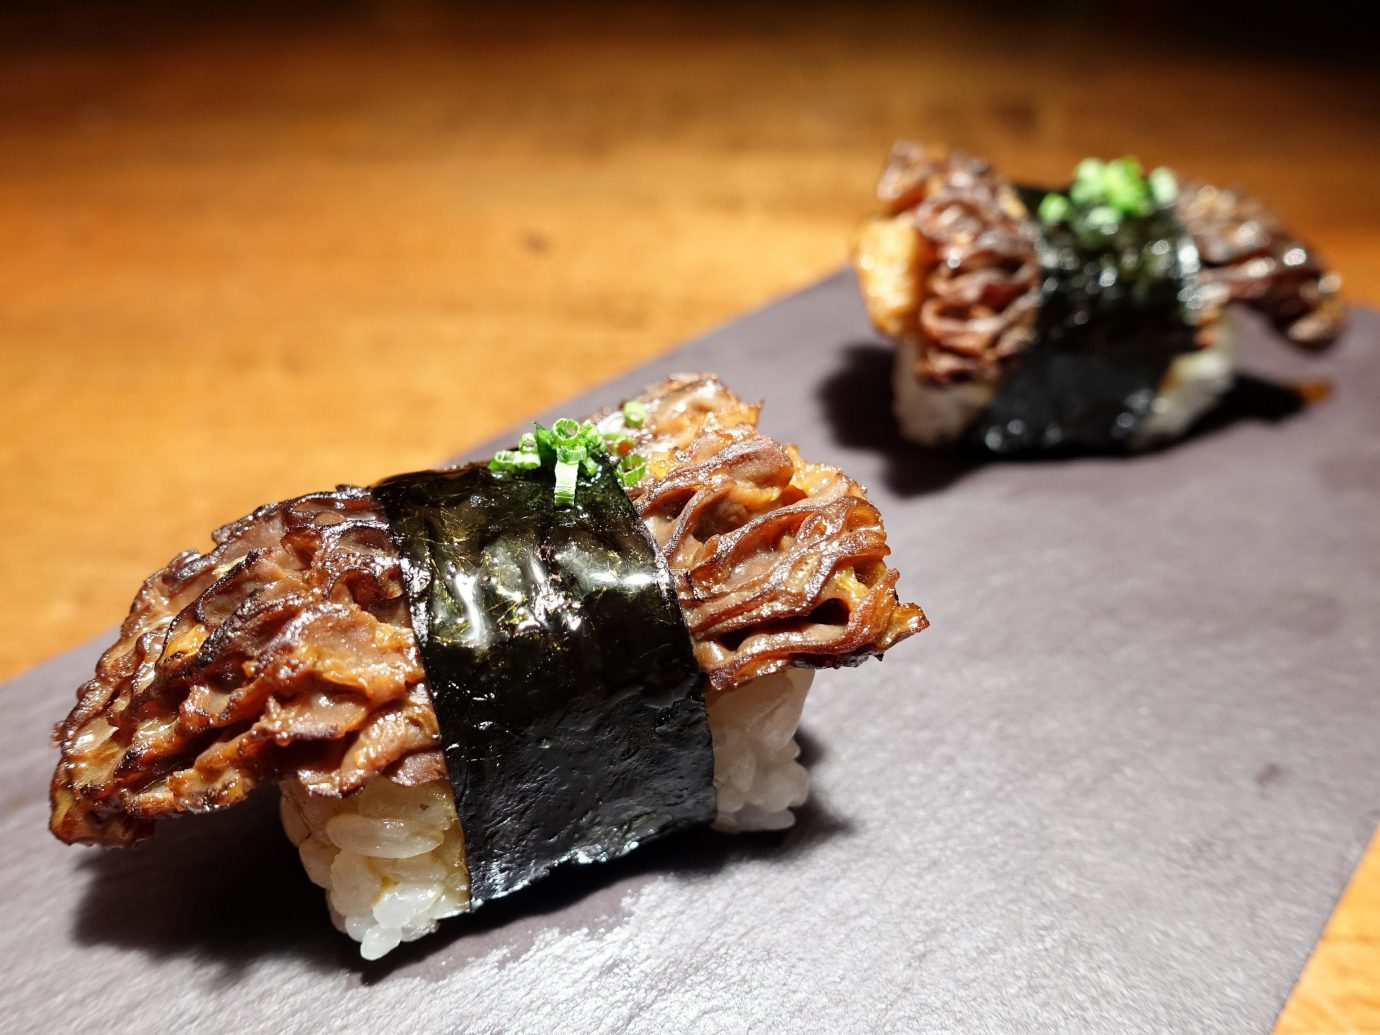 Food + Drink dish piece sushi food slice cuisine japanese cuisine asian food chocolate fork unagi california roll appetizer animal source foods dessert comfort food side dish square